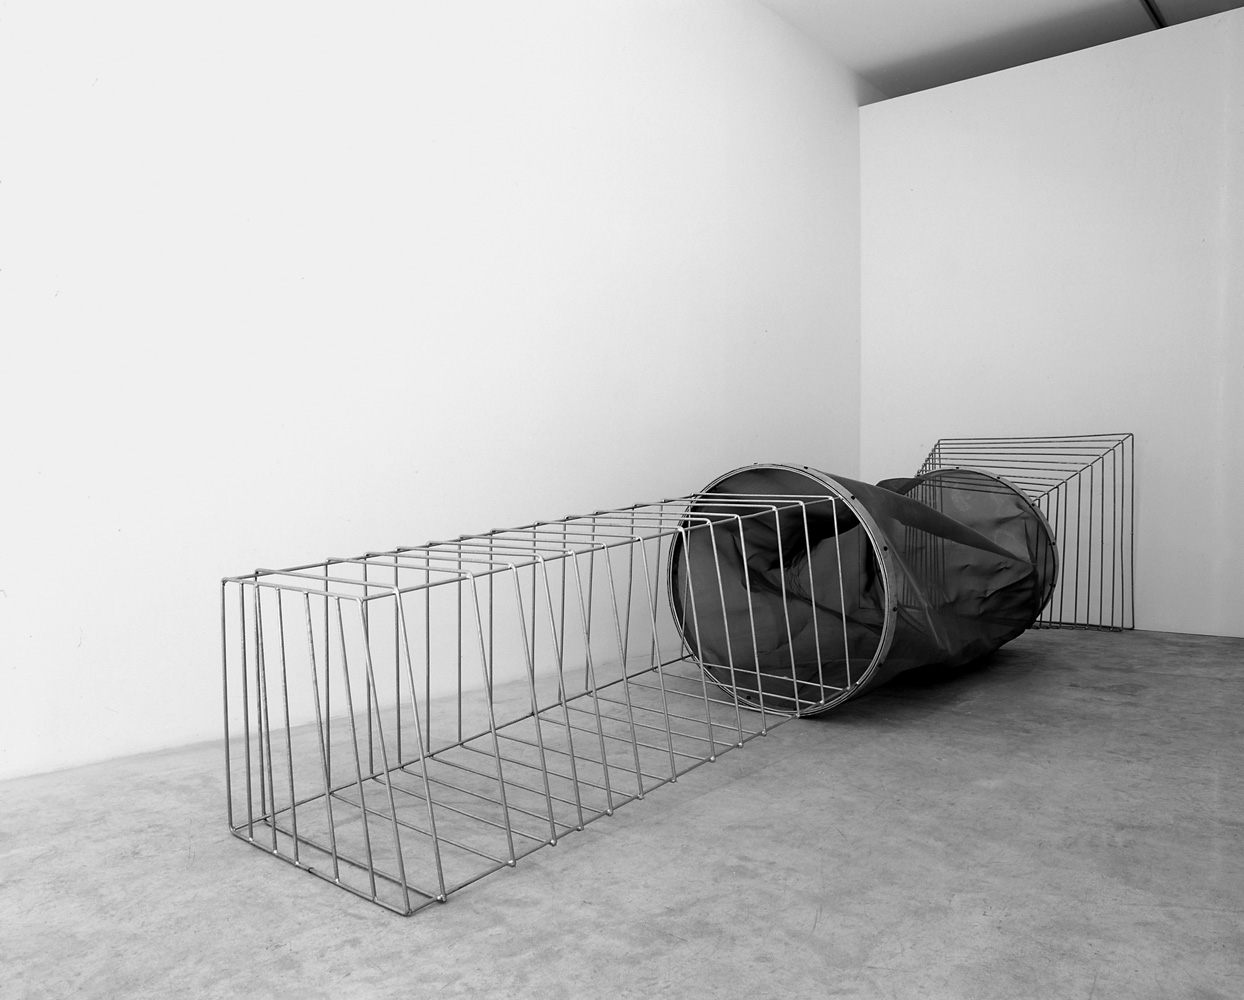 La Linterna III, 2003, galvanized iron and stainless steel, 110,5 x 474 x 100,5 cm. Galeria Maior